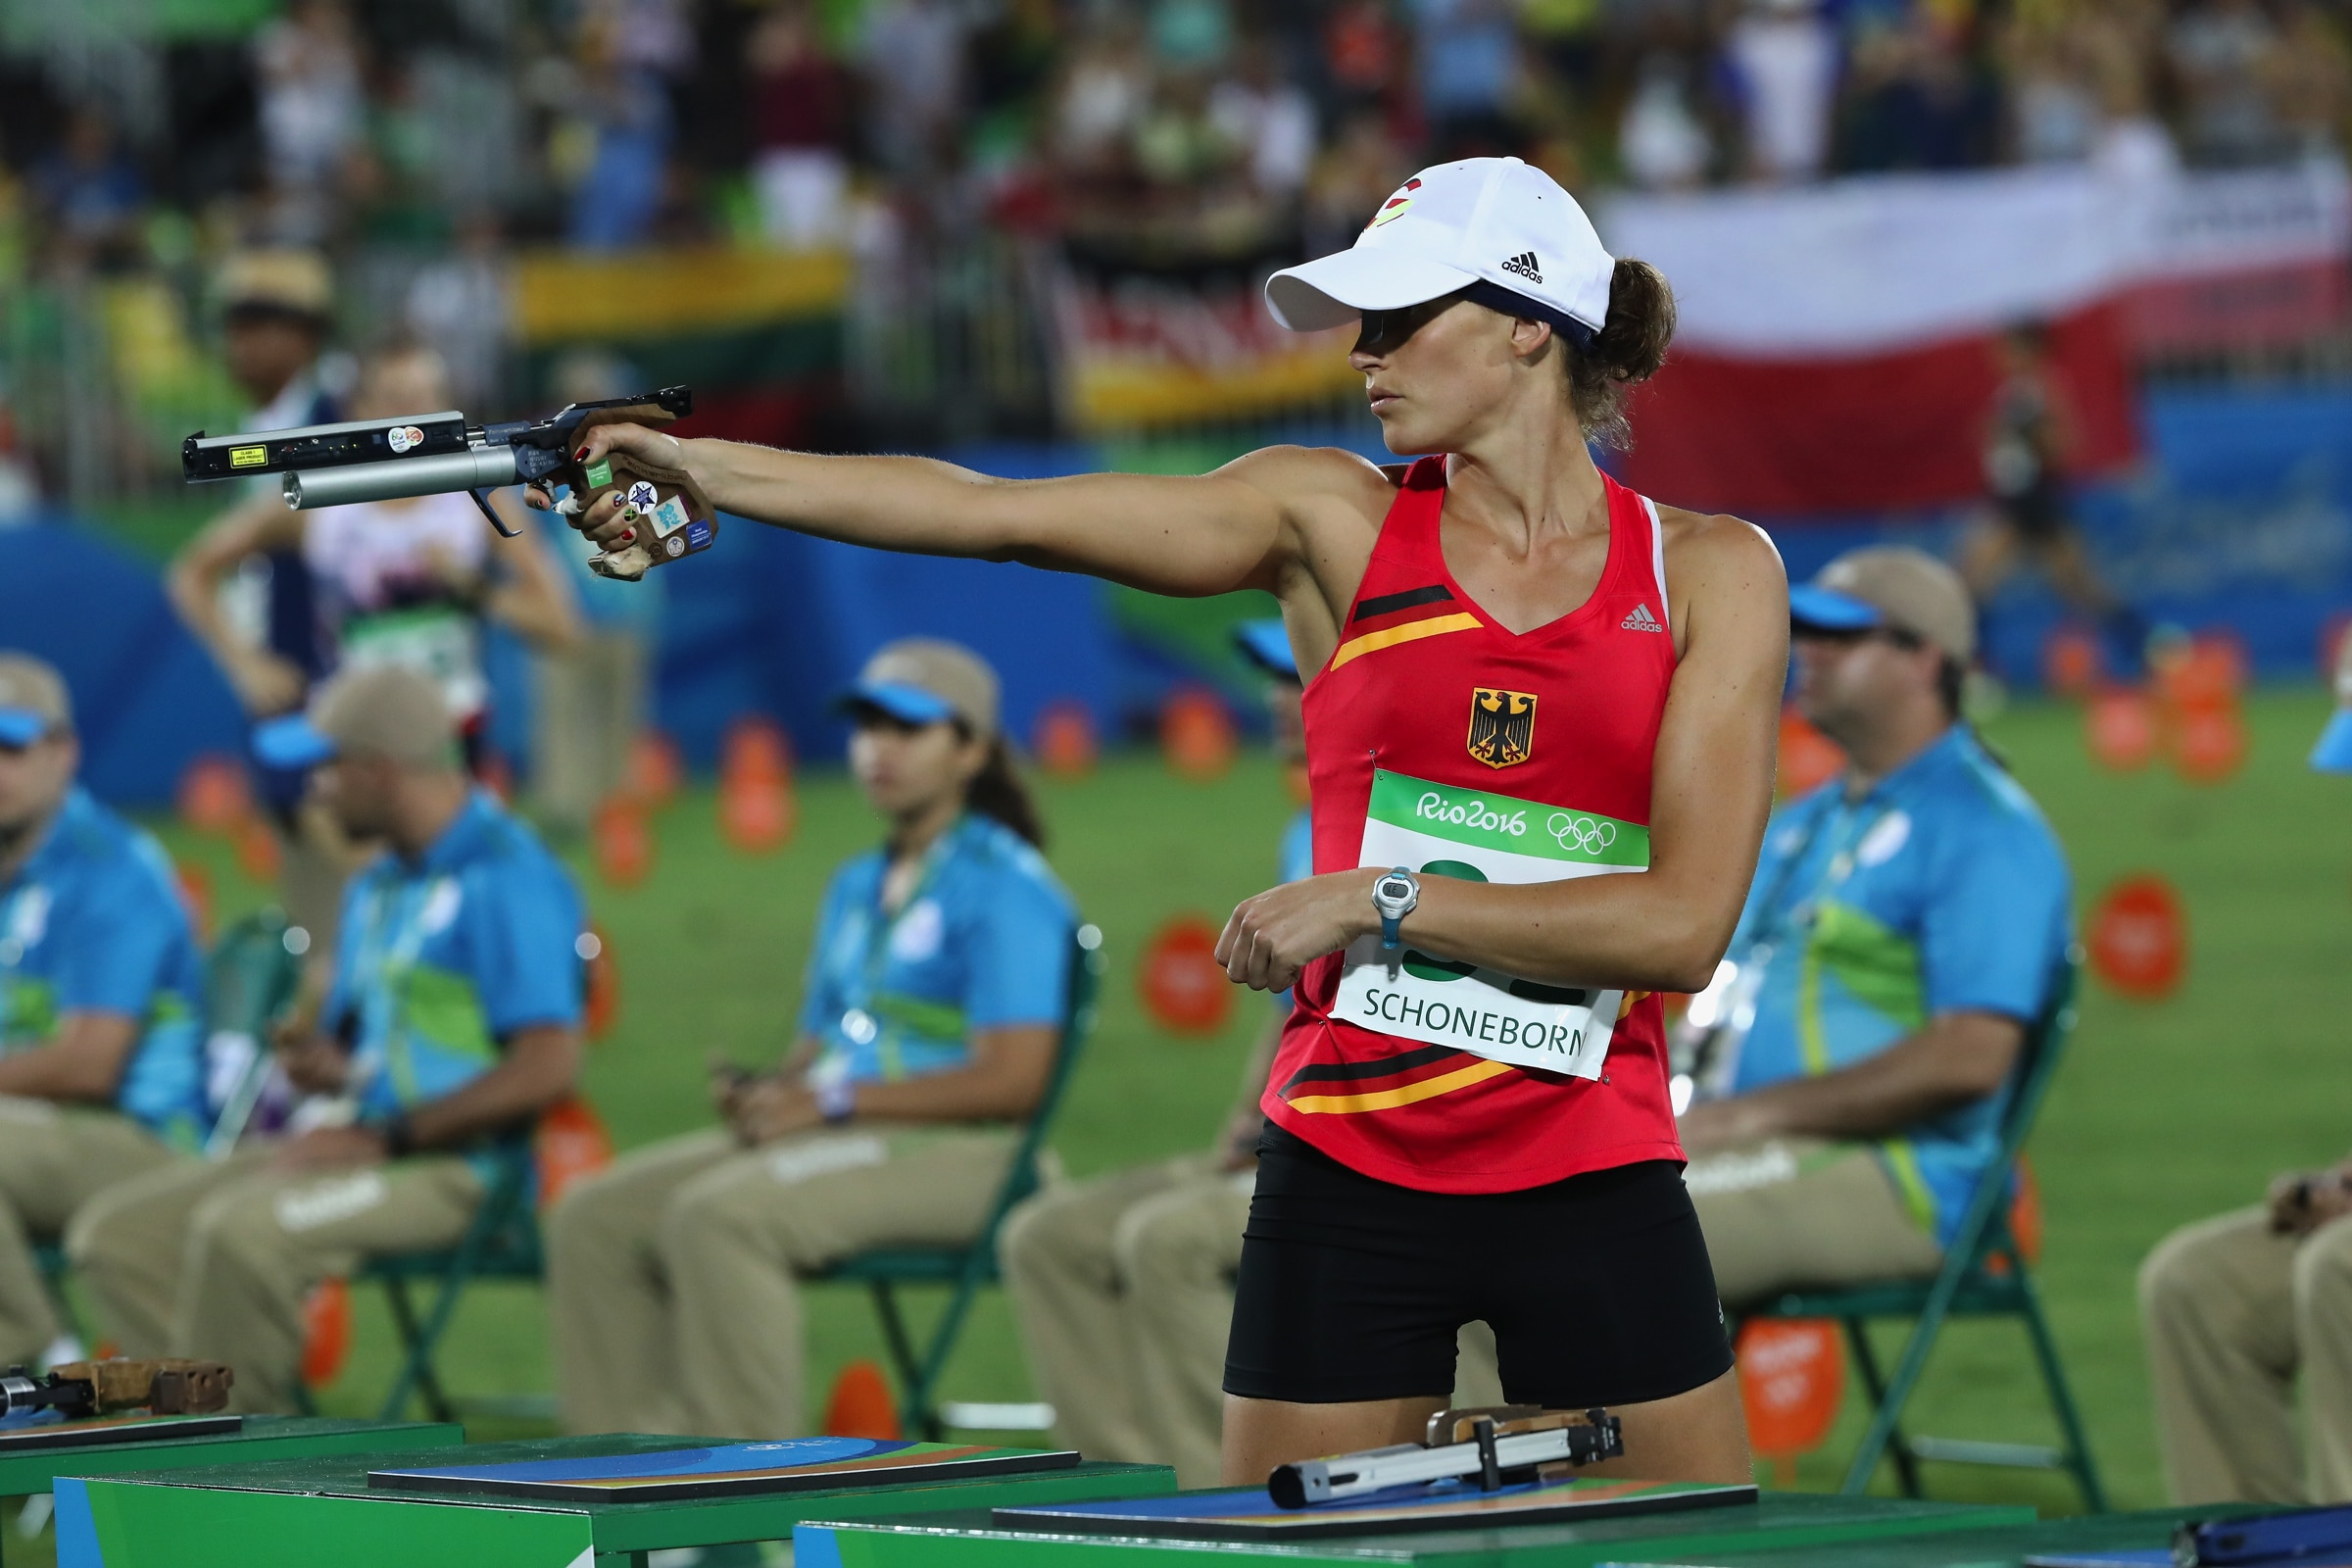 Modern Pentathlon - Combined Running/Shooting Women